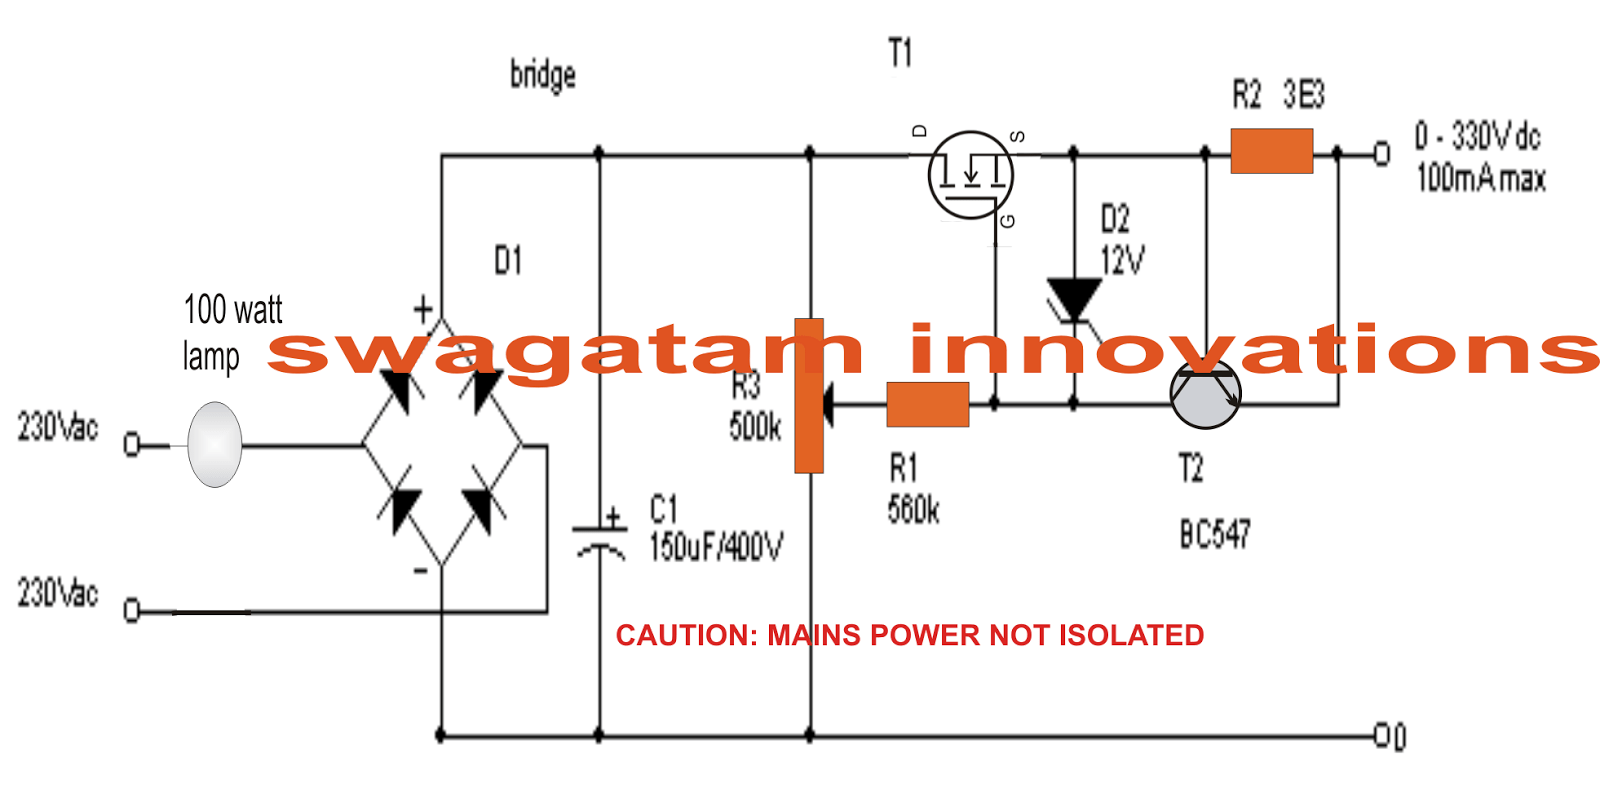 hight resolution of the circuit diagram was designed to create a power supply without build a bridge circuit diagram with one power supply